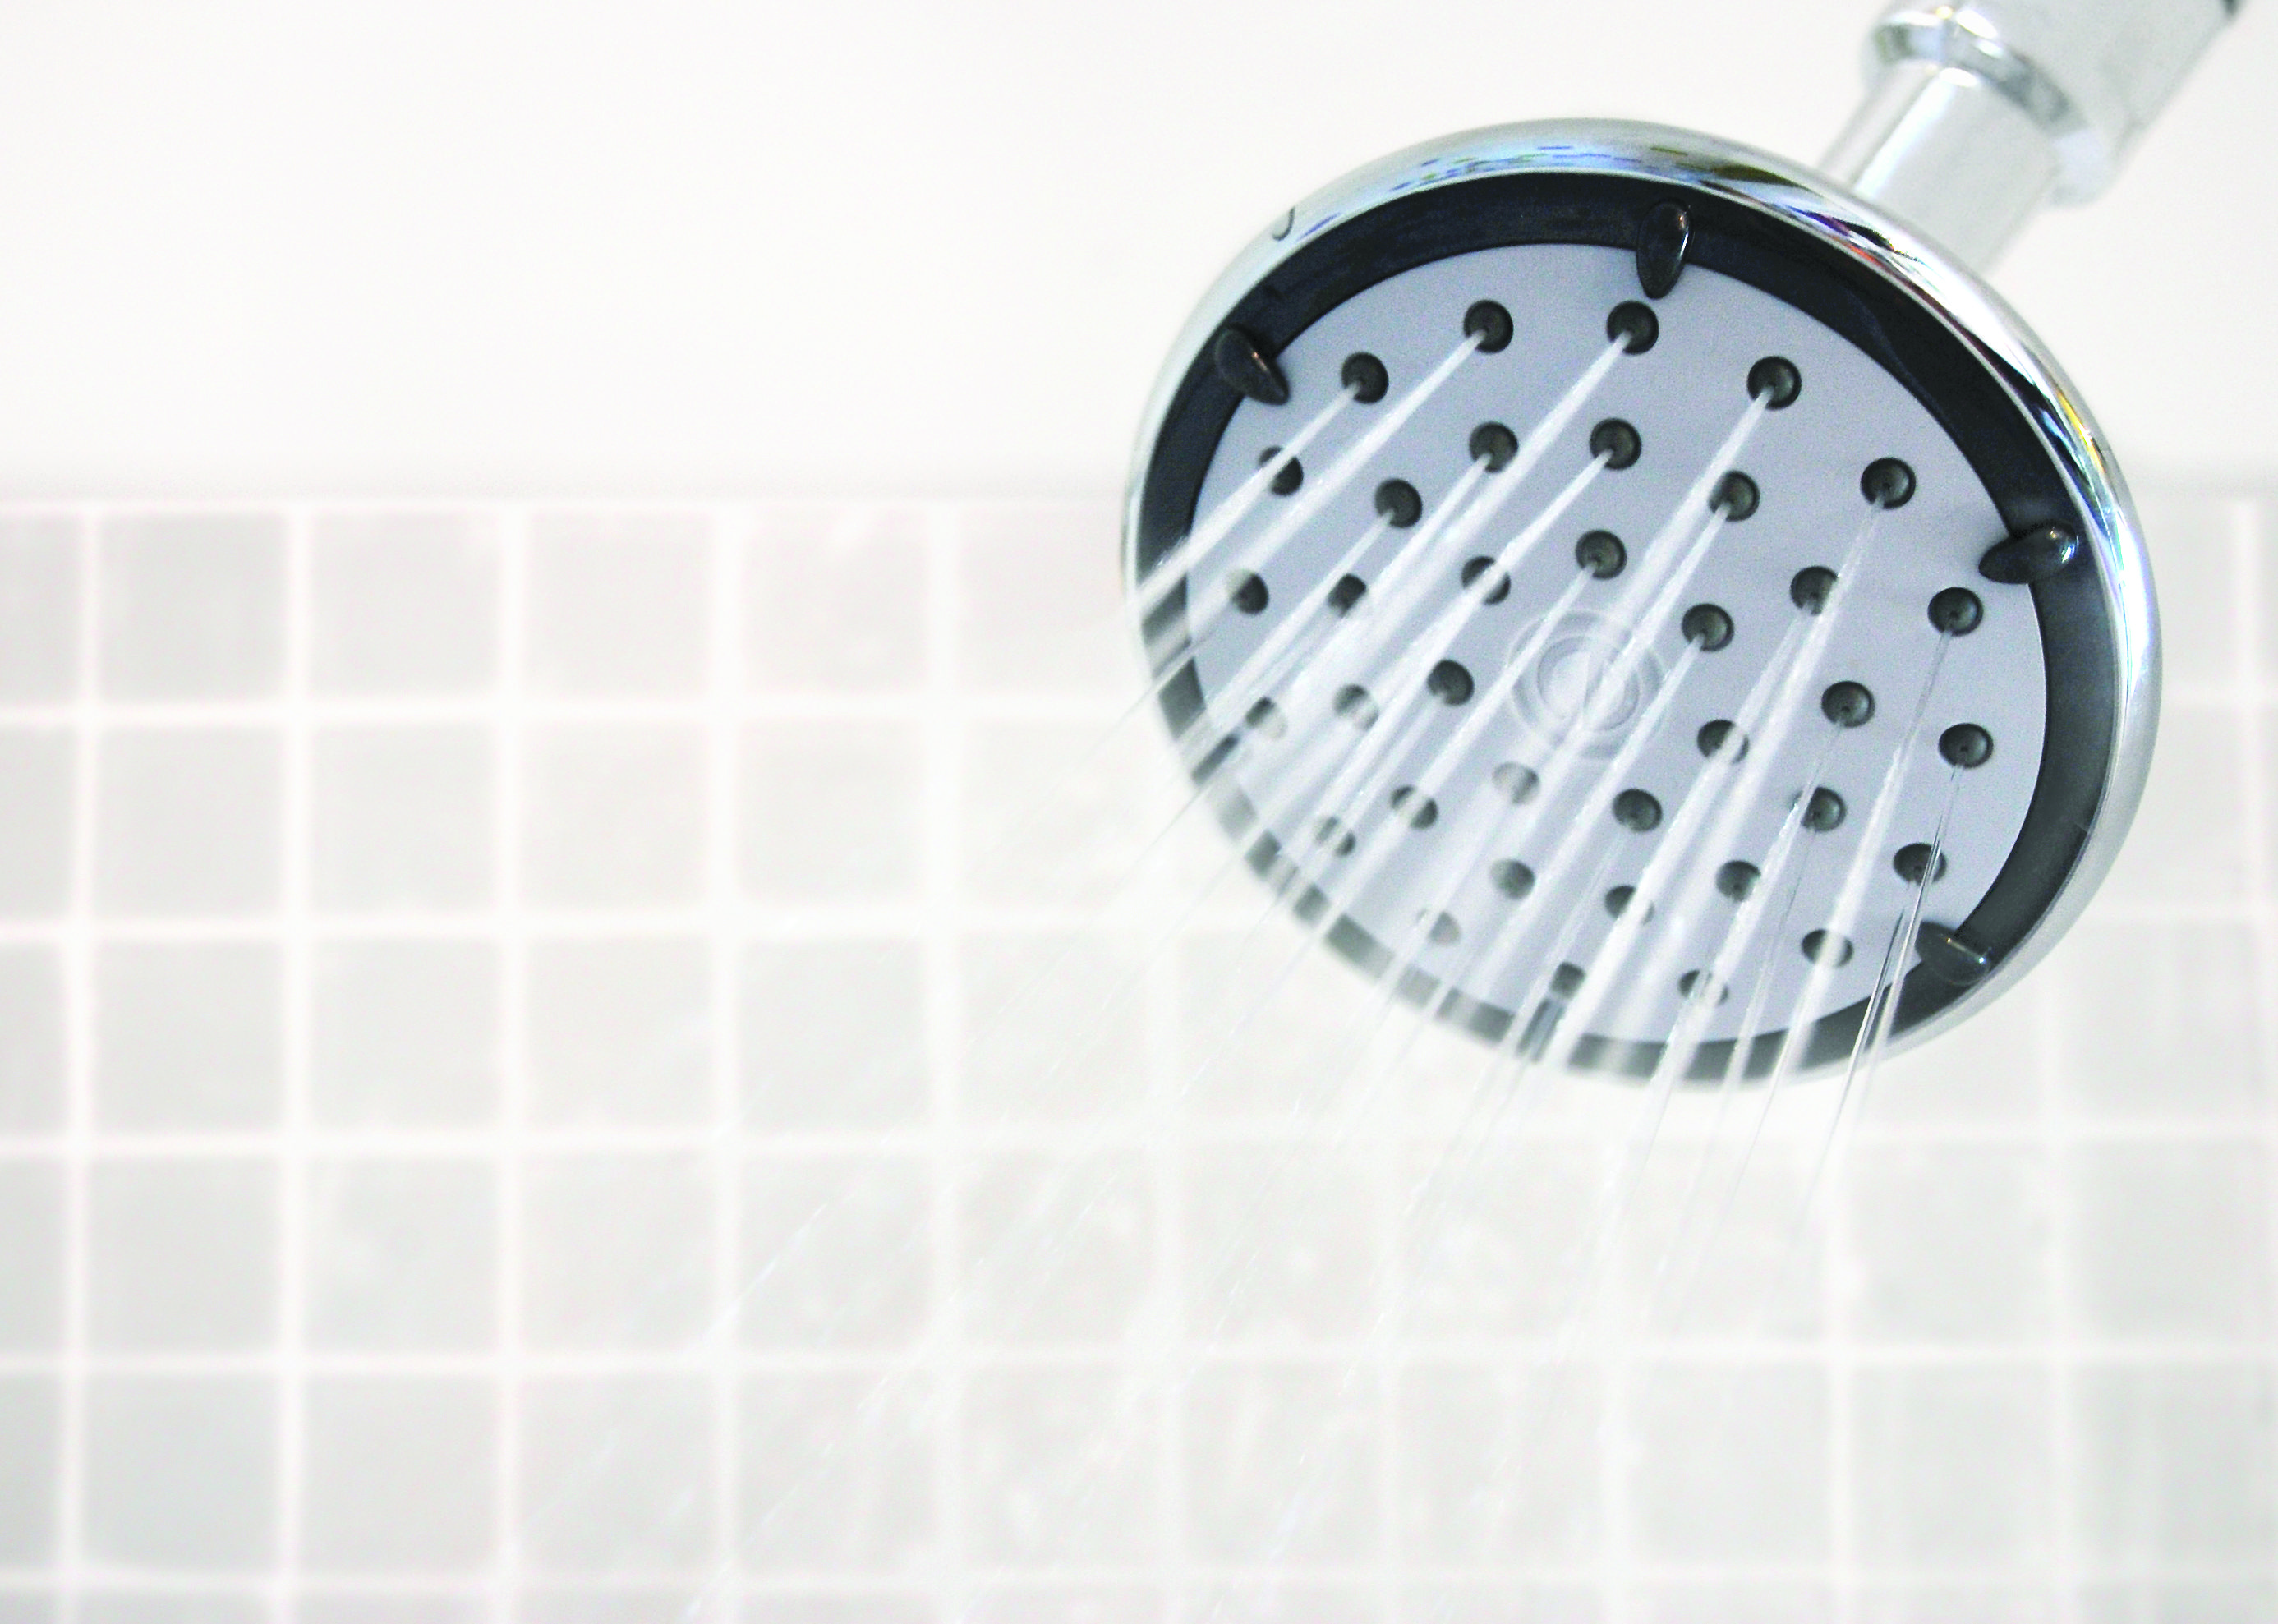 The Jetstorm Fixed Head is the latest addition to Ecocamel's range of advanced shower heads. With its sleek, streamlined design and coloured trim, Jetstorm adds a touch of style to any shower room.